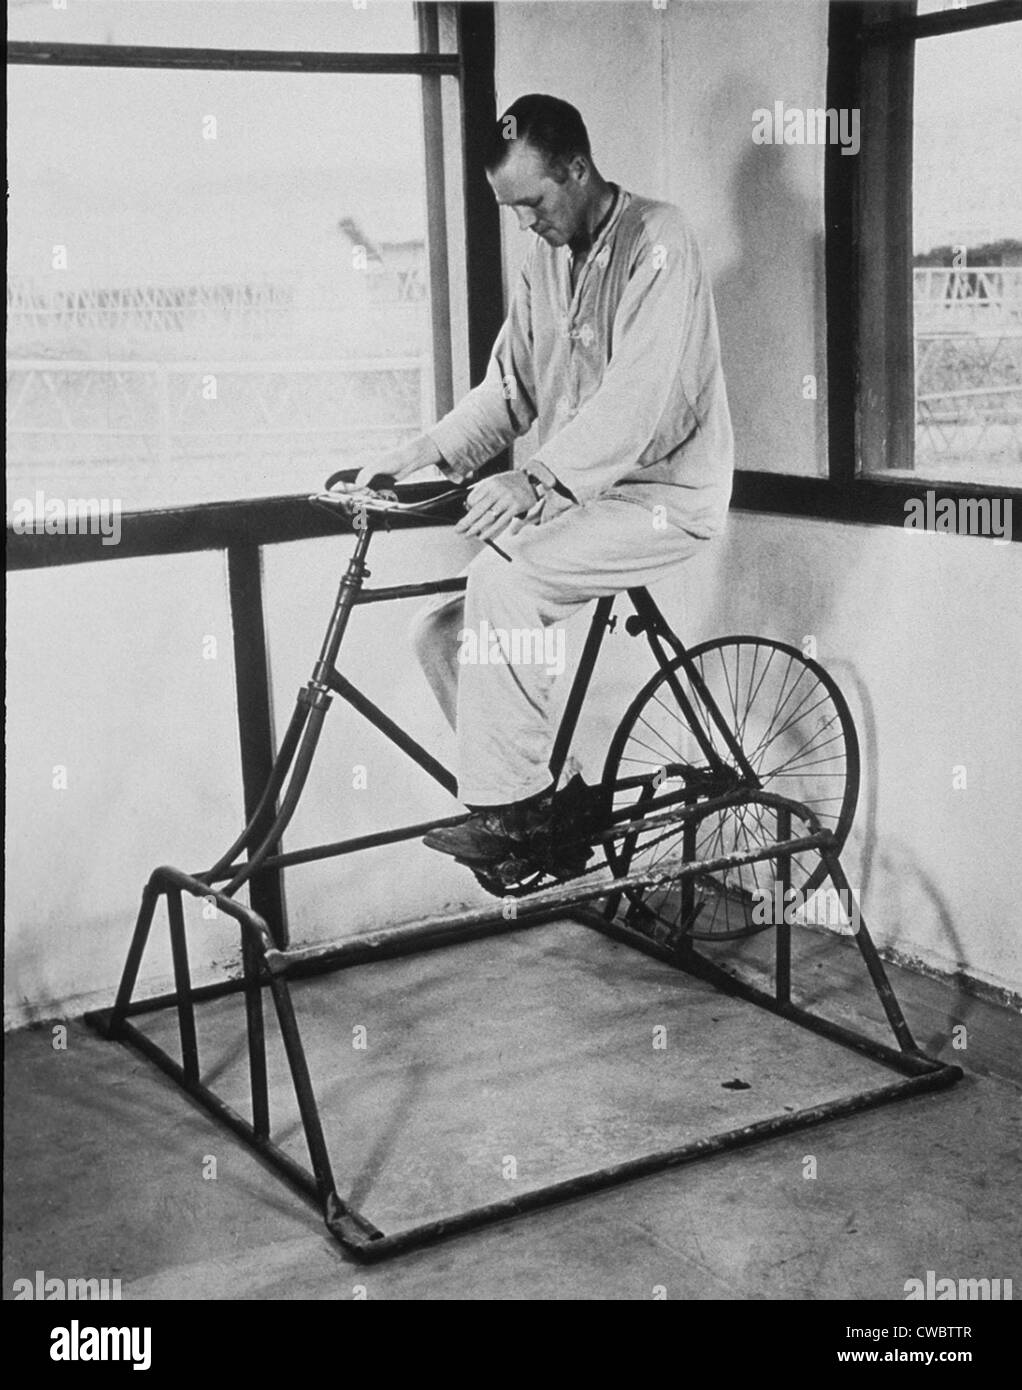 Physical therapy patient using stationary bicycle. Ca. 1950. - Stock Image